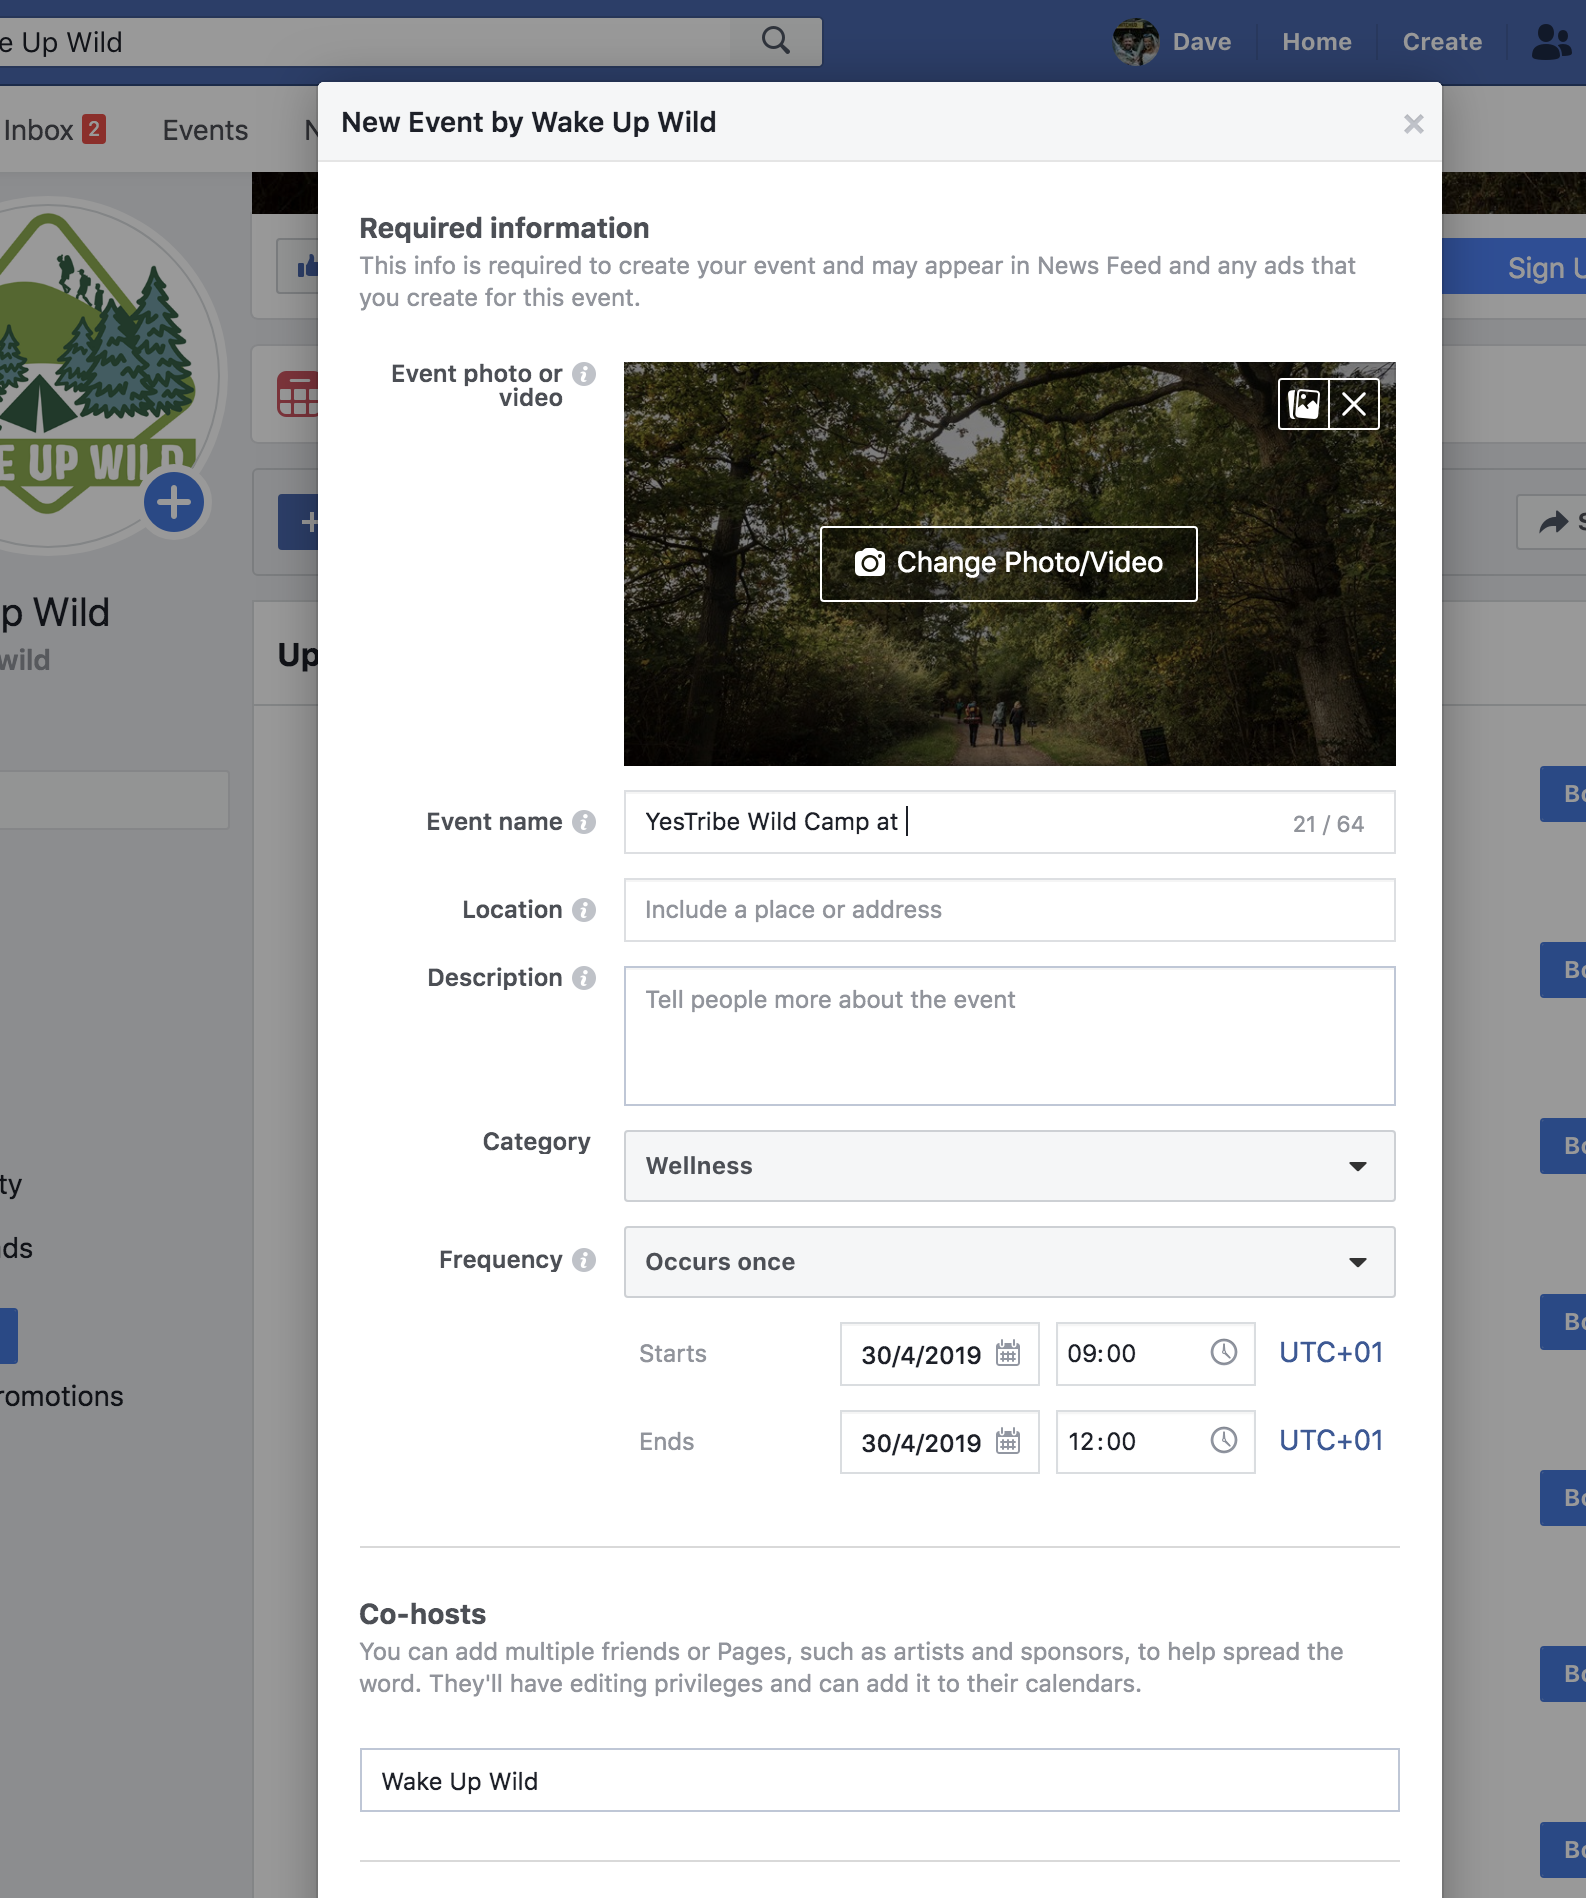 The key details to enter into a Facebook event